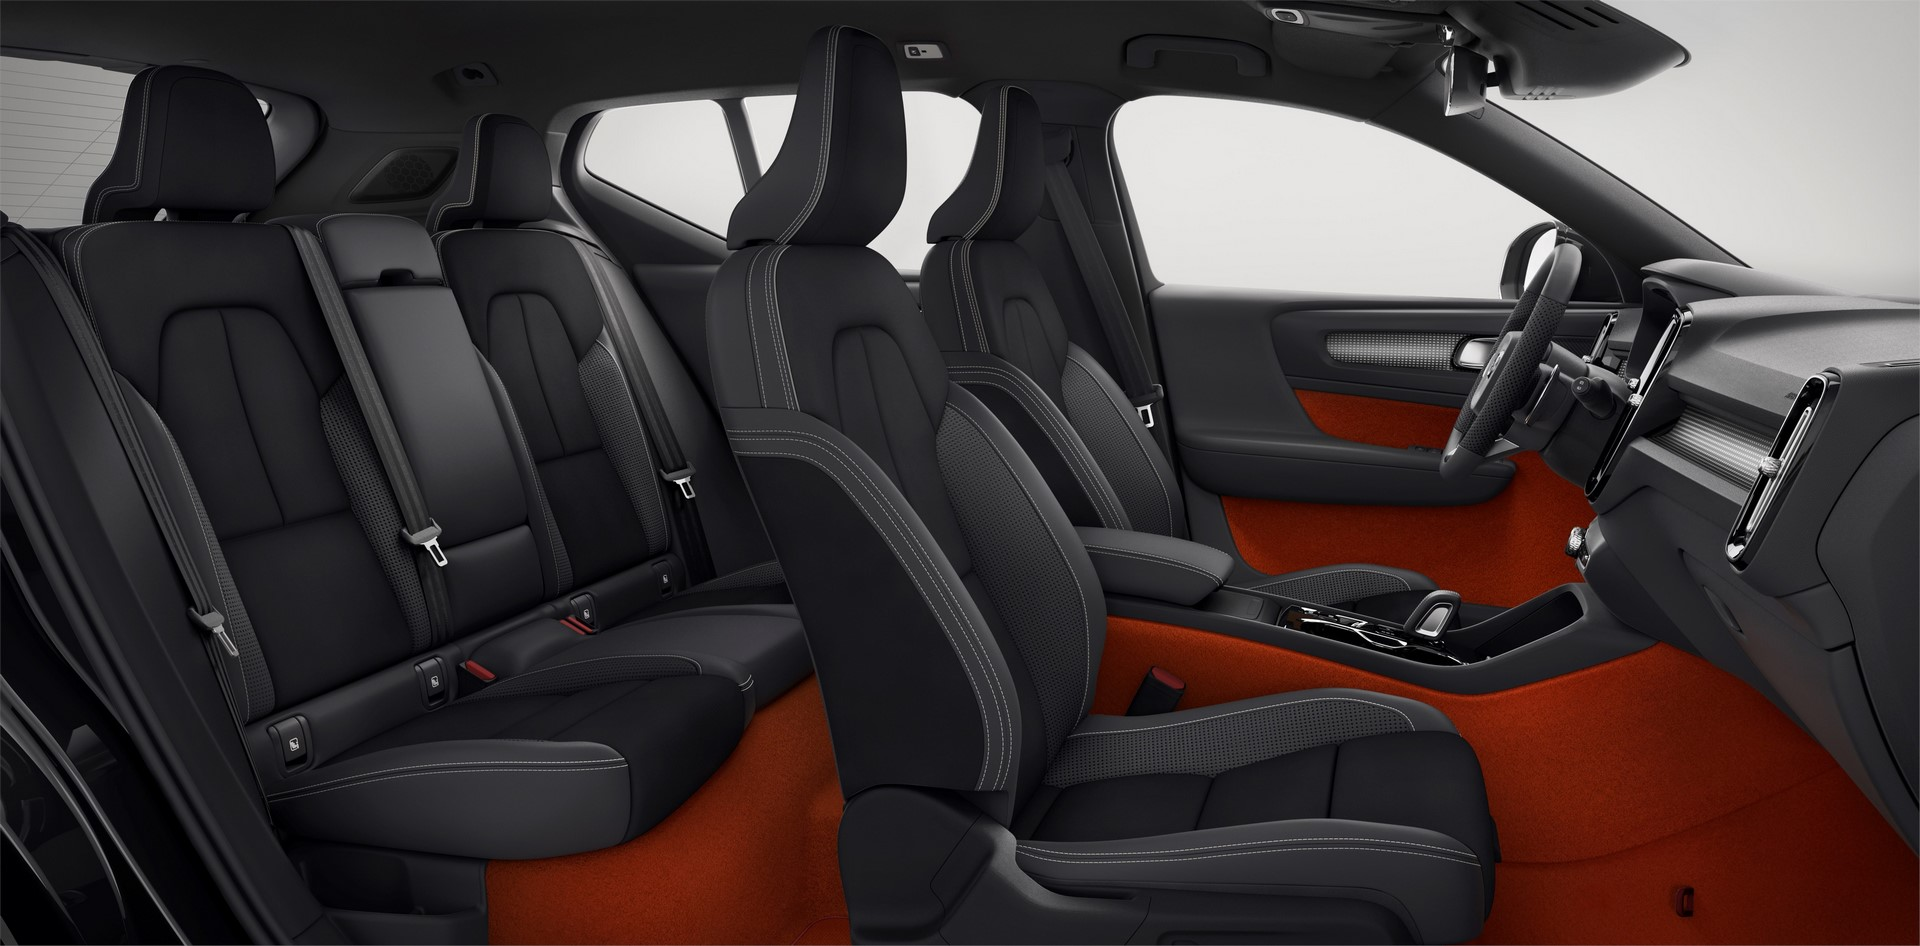 New Volvo XC40 - interior